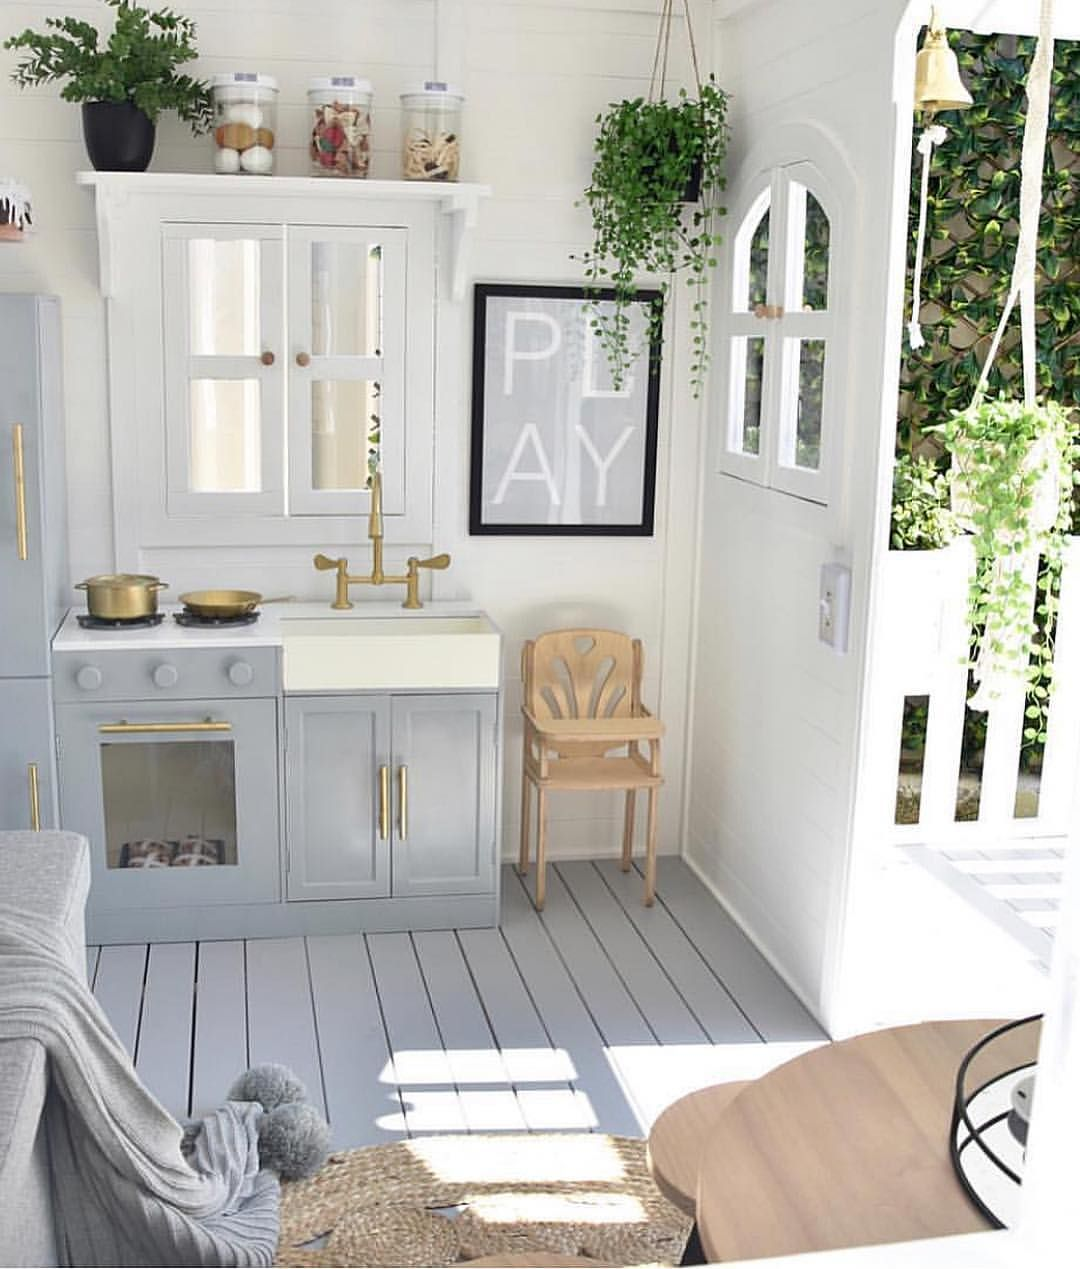 How Adorable Is This Playhouse By Hudson And Harlow Via Decor For Kids Cubby Houses Play Houses Kids Cubby Houses